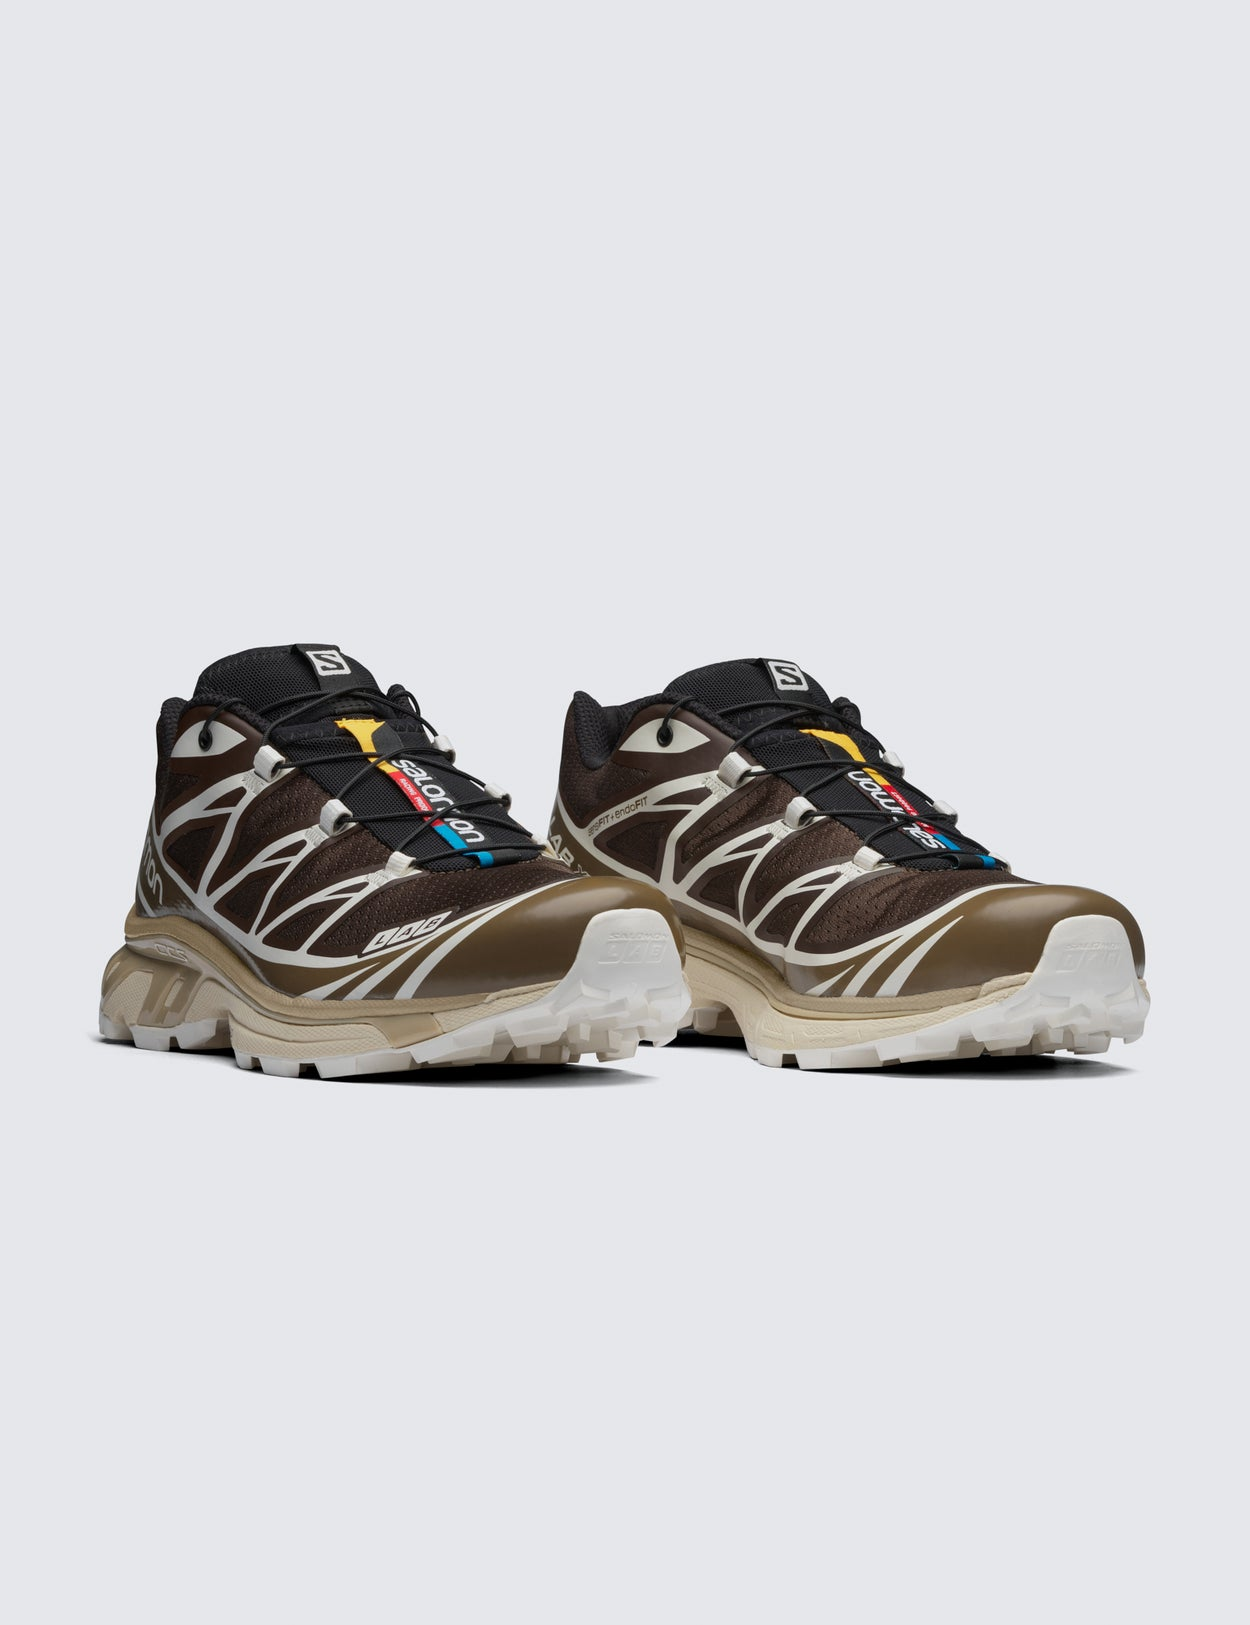 WREN BROWN XT-6 ADVANCED SNEAKERS